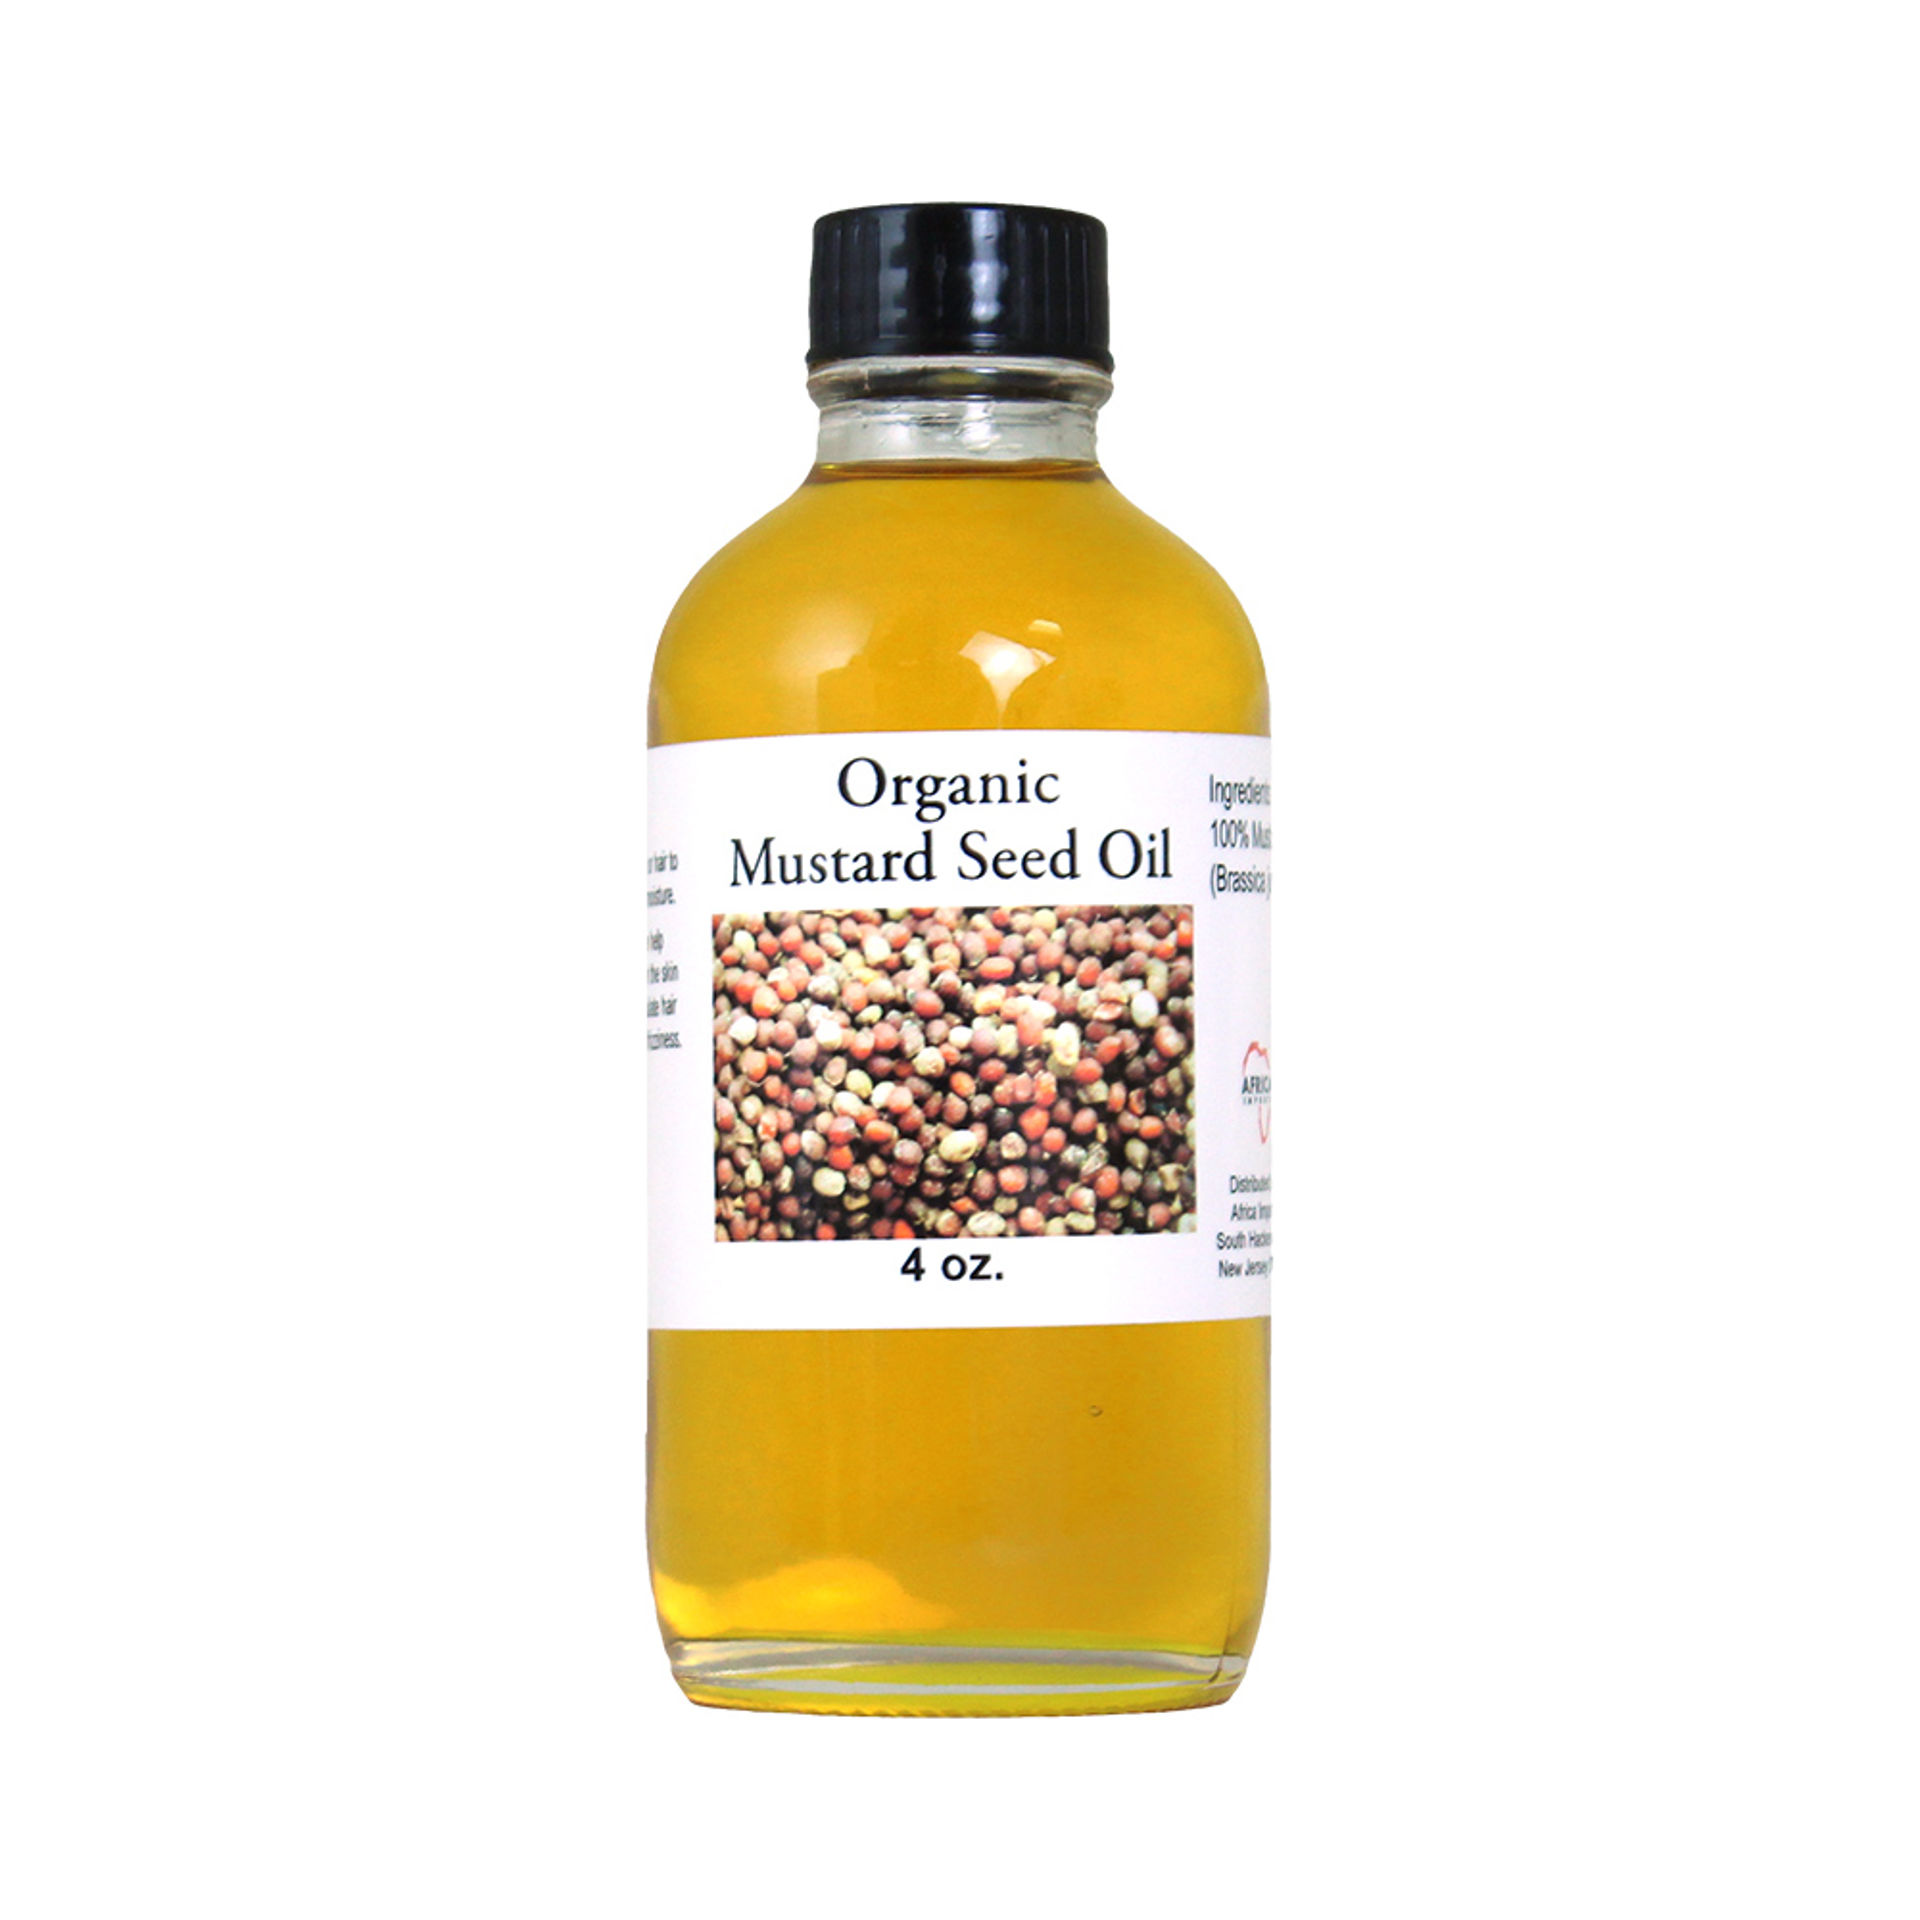 Picture of Organic Mustard Seed Oil - 4 oz.